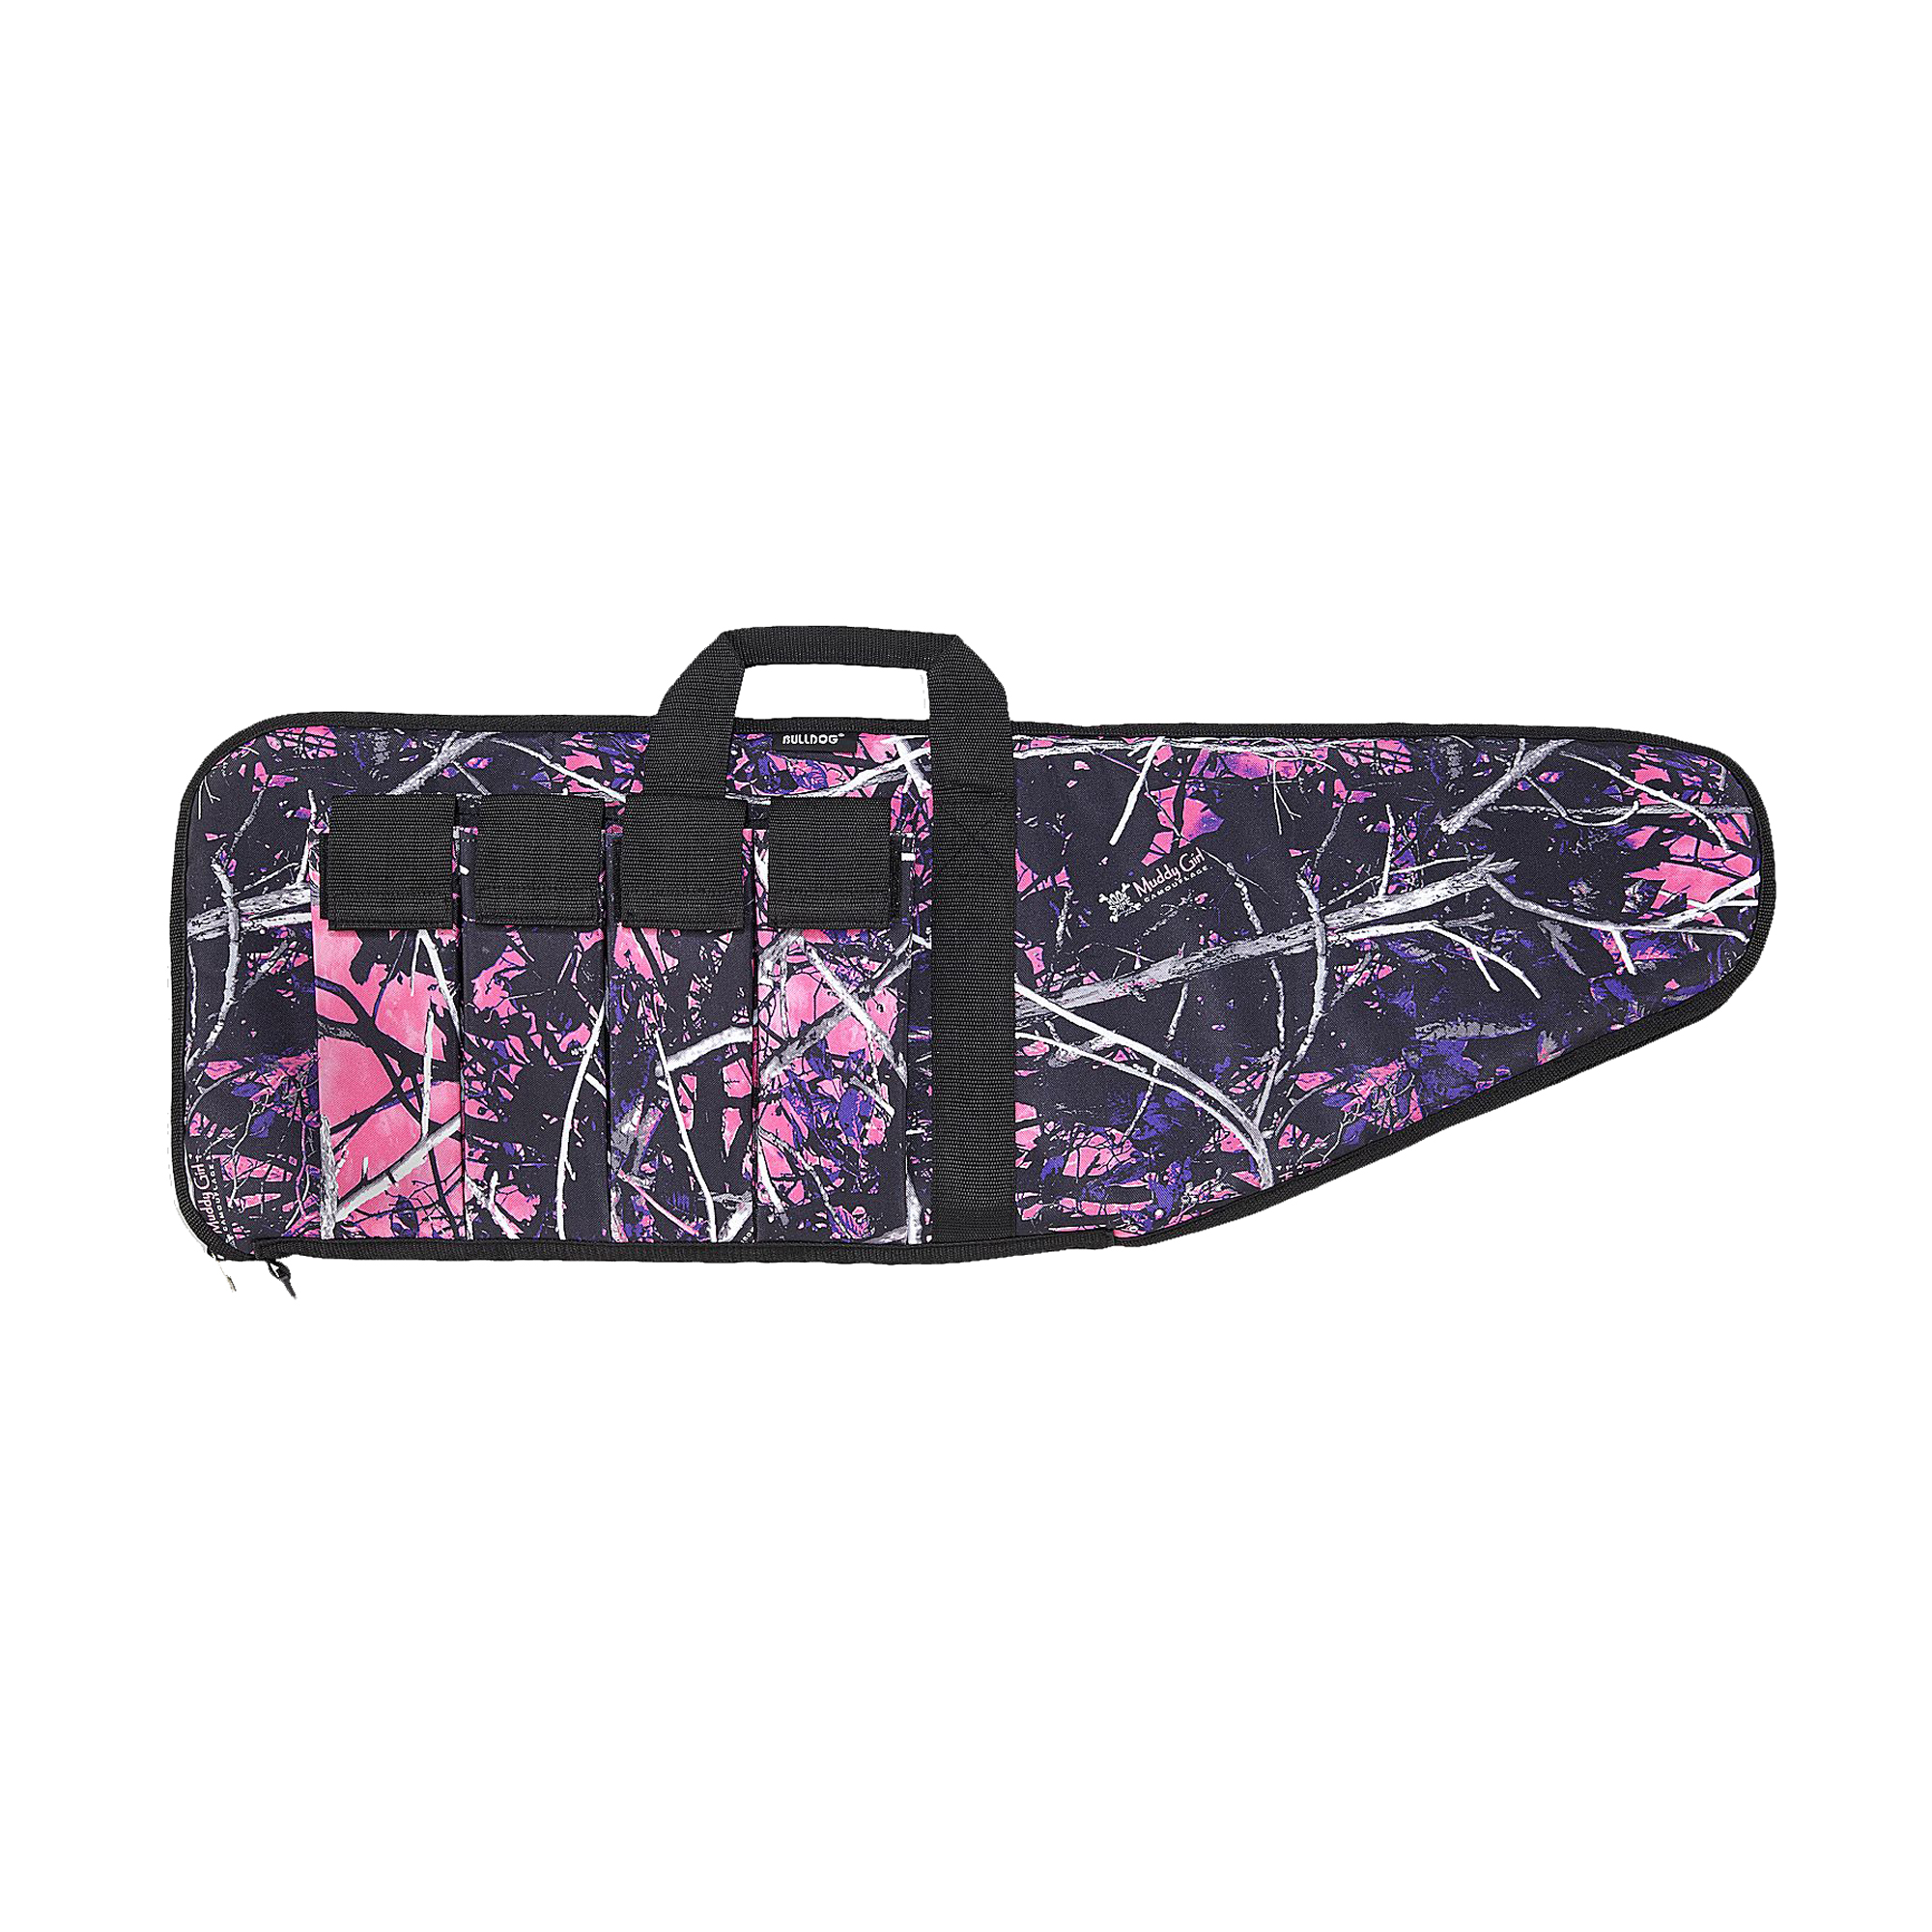 "BULLDOG EXTREME TACTICAL RIFLE CASE 1000D NYLON 43"" MUDDY GIRL CAMO W/BLACK TRIM"